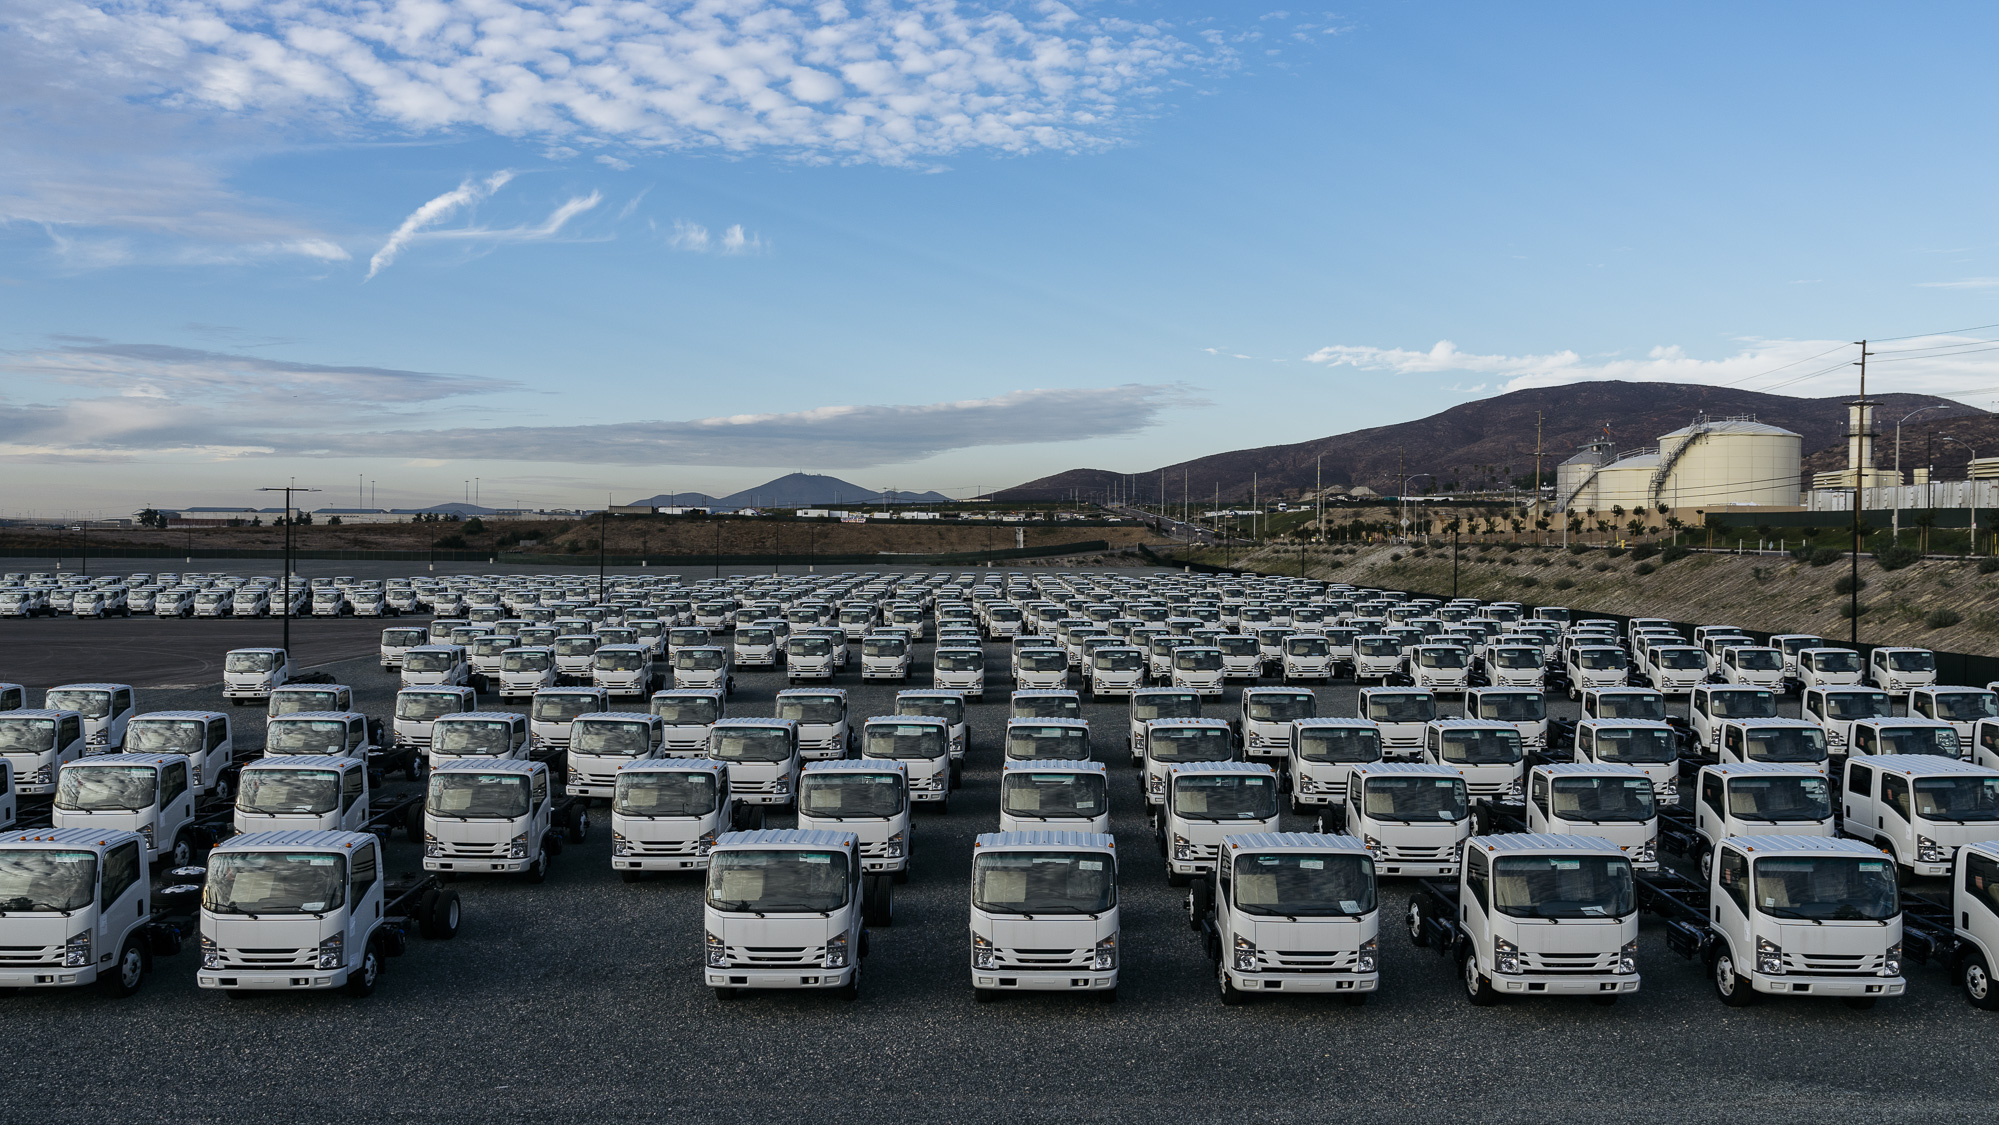 IMAGE CAPTION:  New truck components await transport in Otay Mesa, California. Legal two-way trade between the United States and Mexico amounts to more than $1 billion a day.